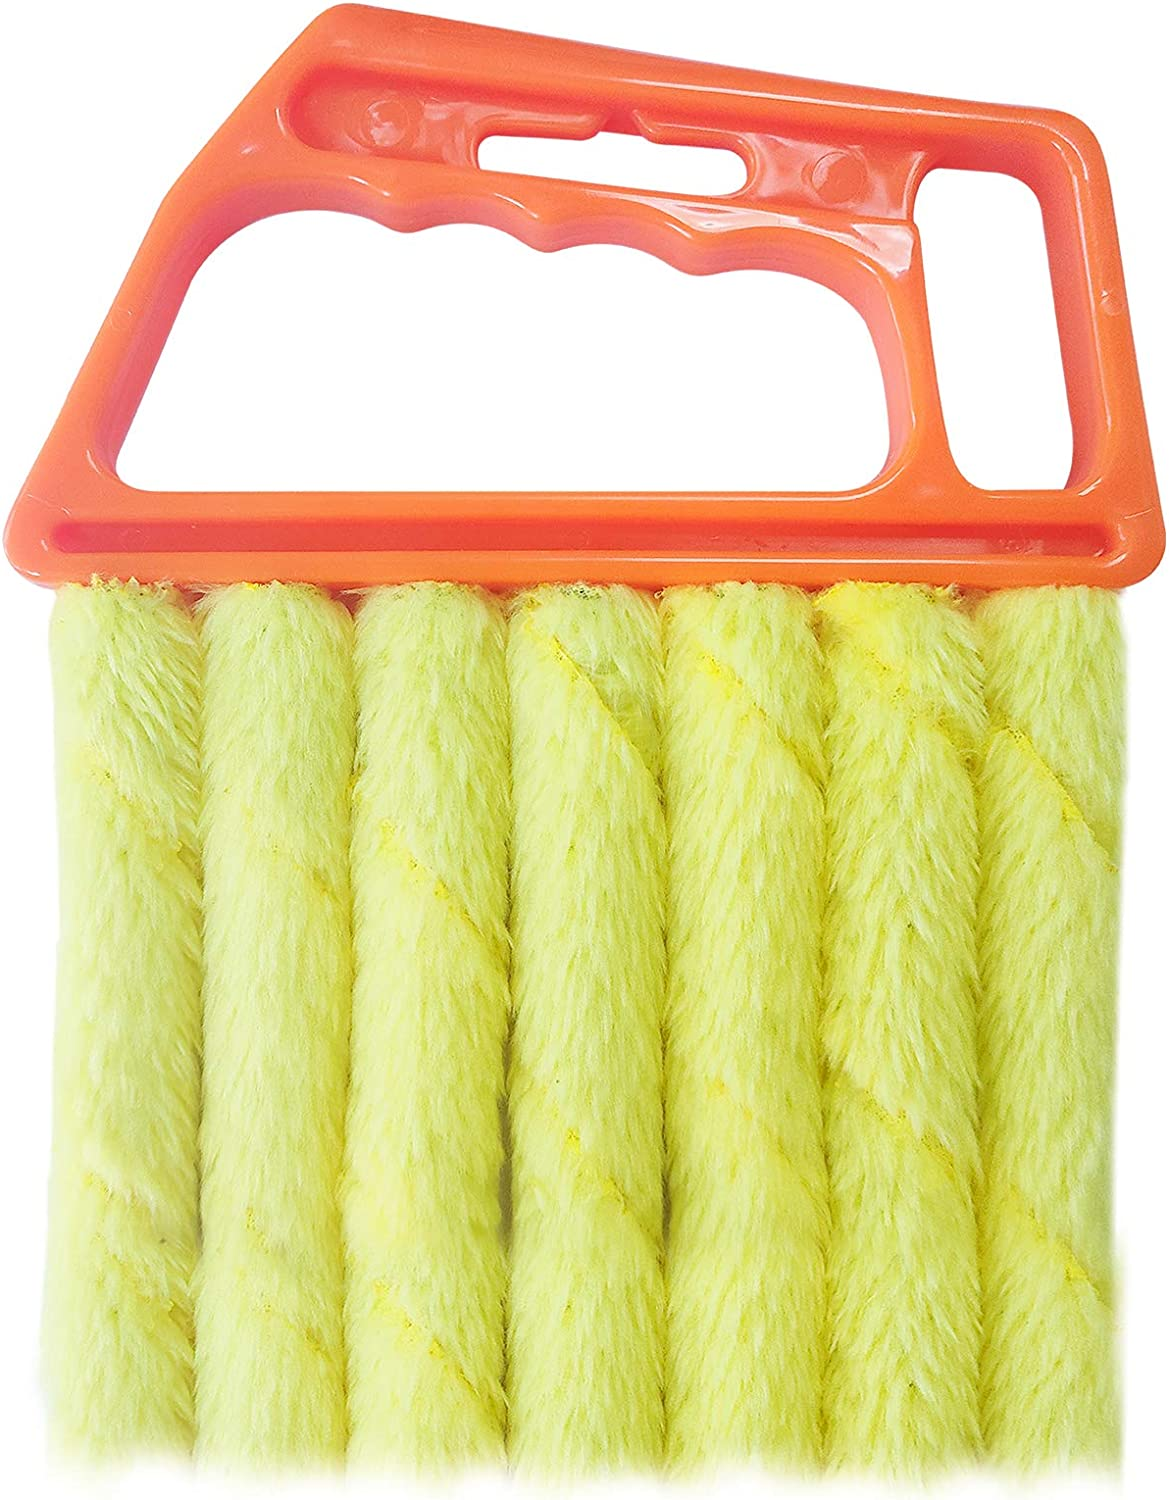 Details about  /Venetian Blind Cleaner Duster Cleaning Tool Blinds Microfibre Washable Cloth New